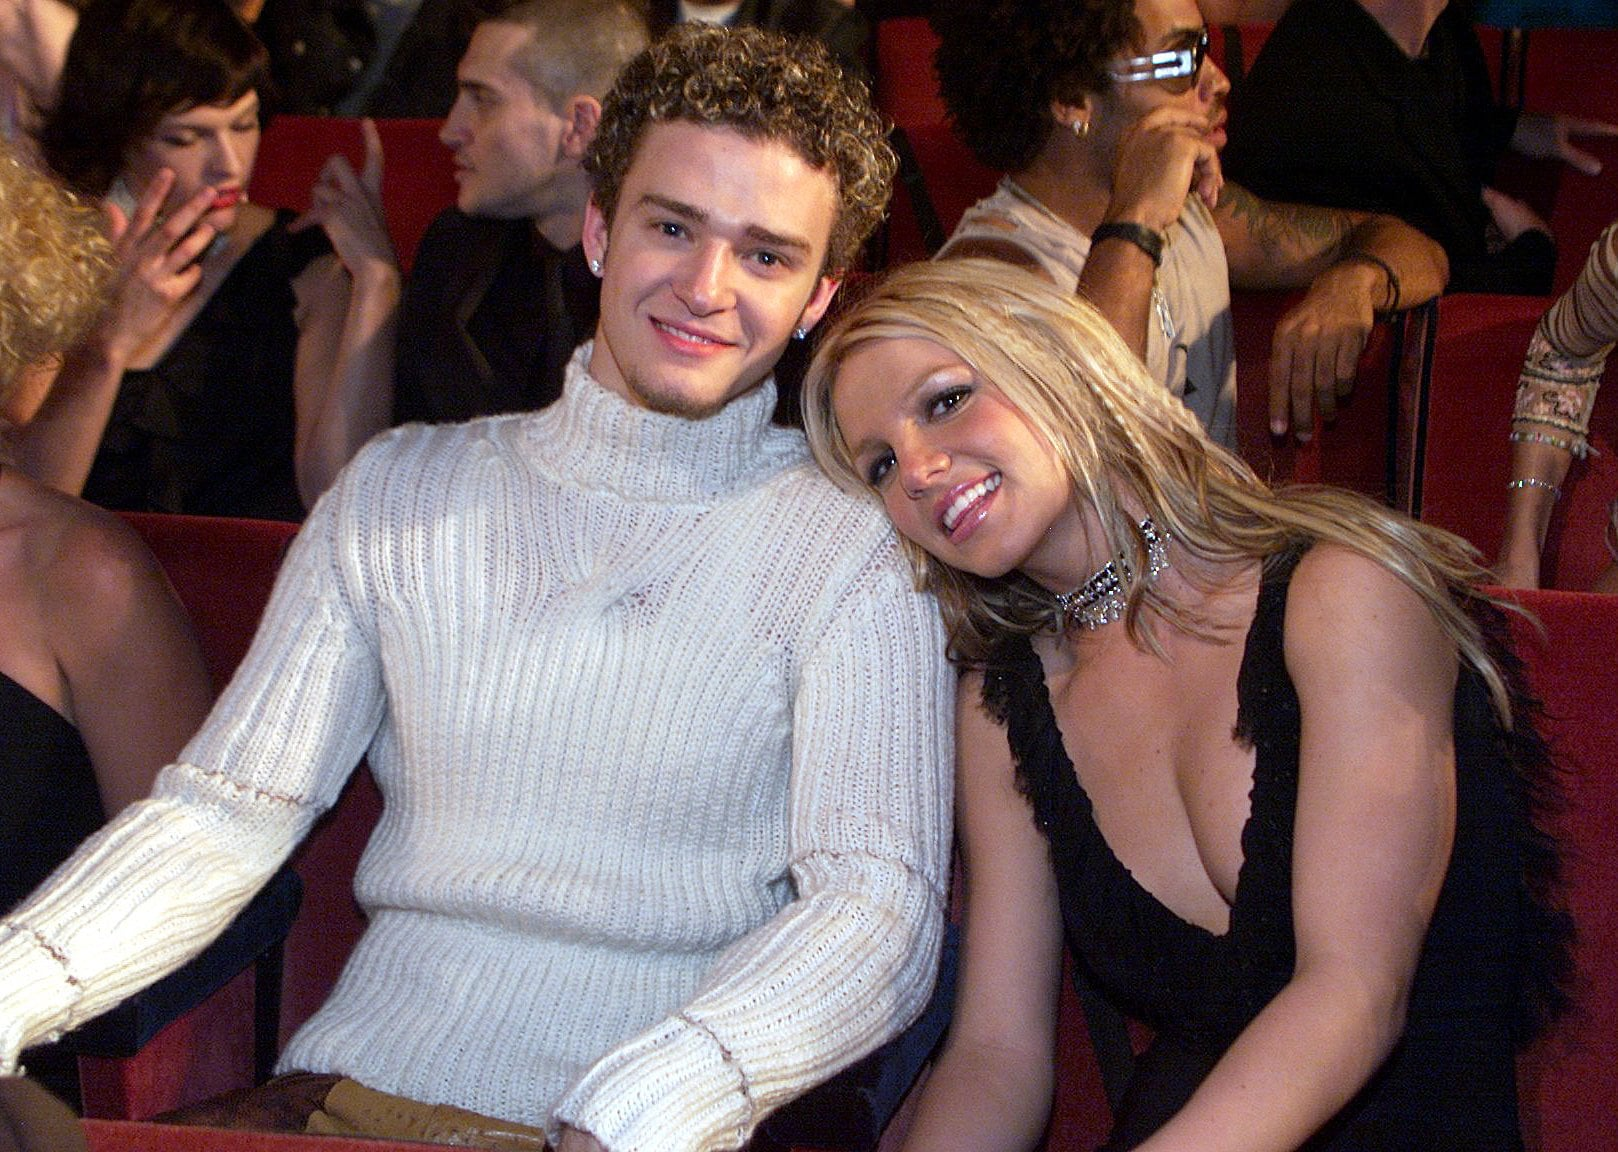 When he cuddled up with Britney at the 2000 MTV VMAs.